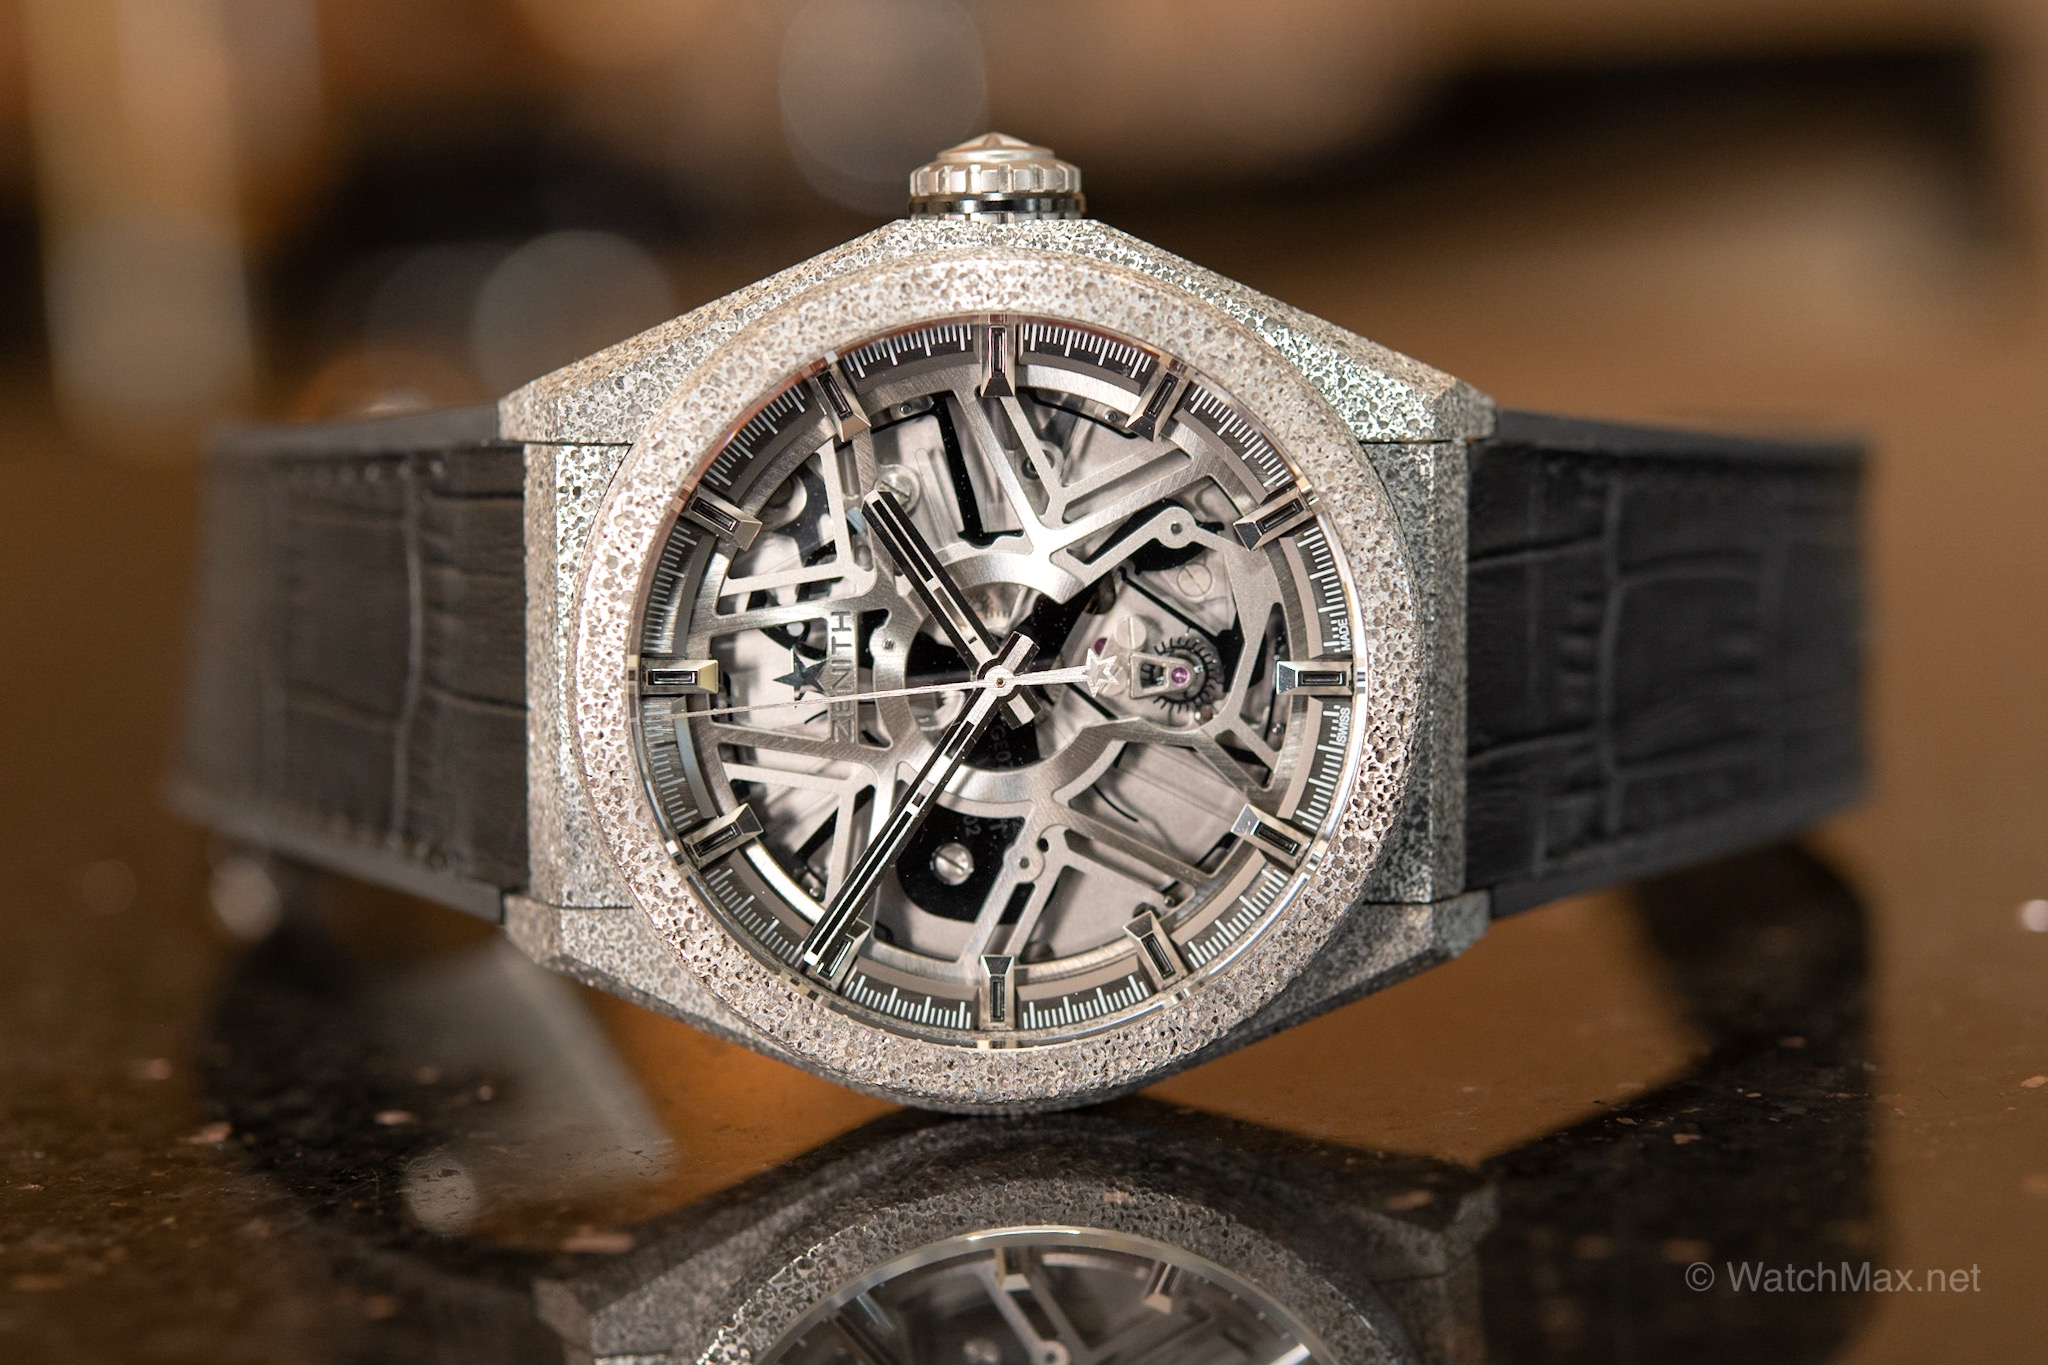 The revolutionary  Zenith Defy Lab  introduced in late 2017 with novel oscillator